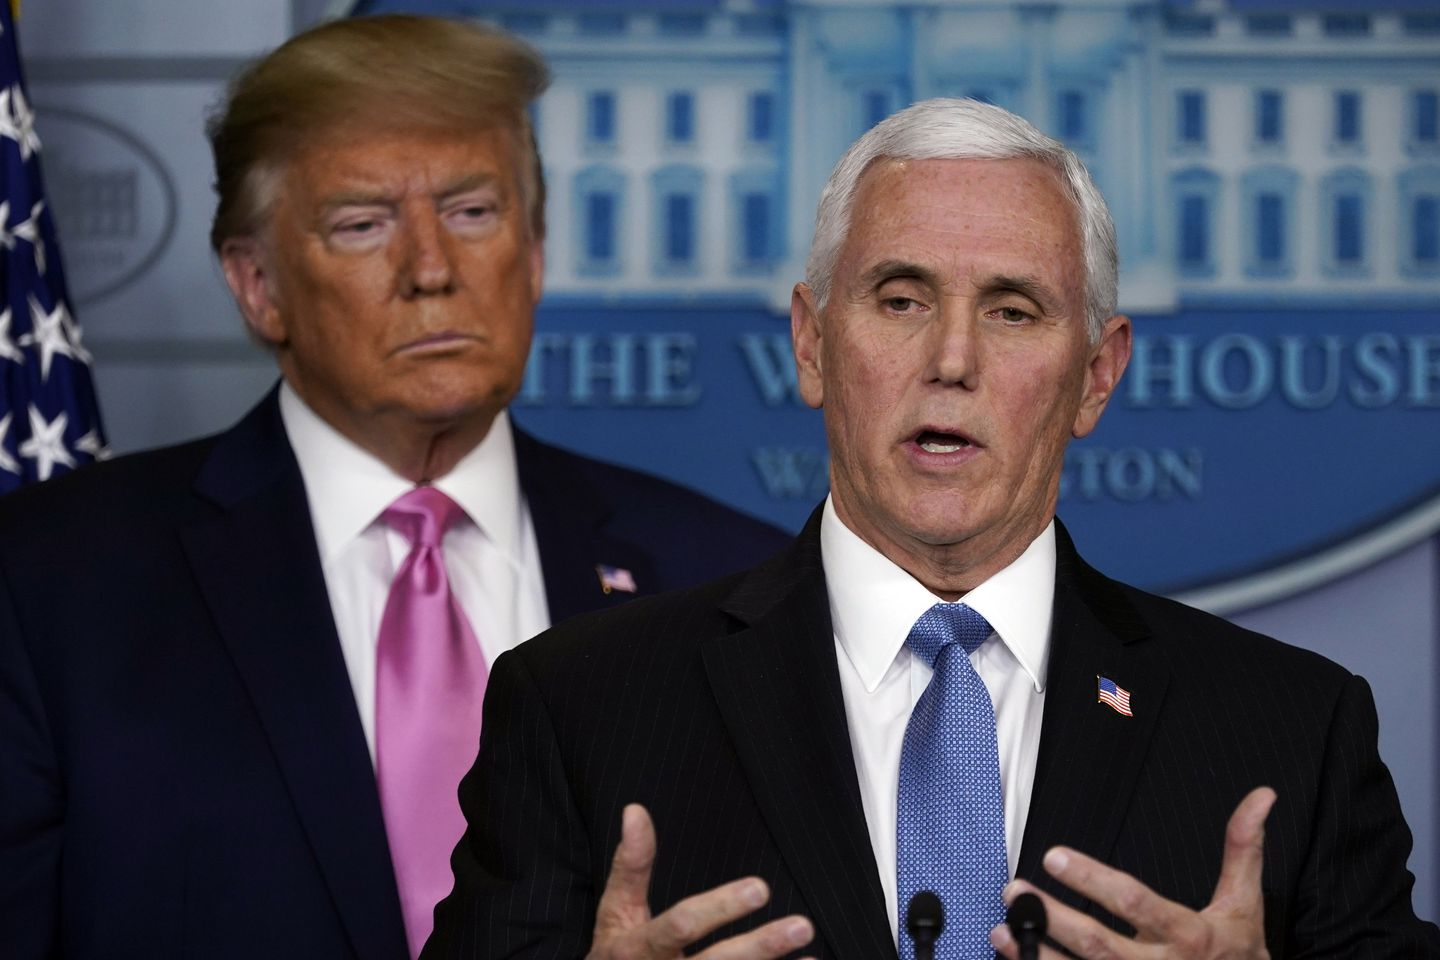 Vice President Mike Pence spoke as President Trump listened during a news conference about the coronavirus on Wednesday.